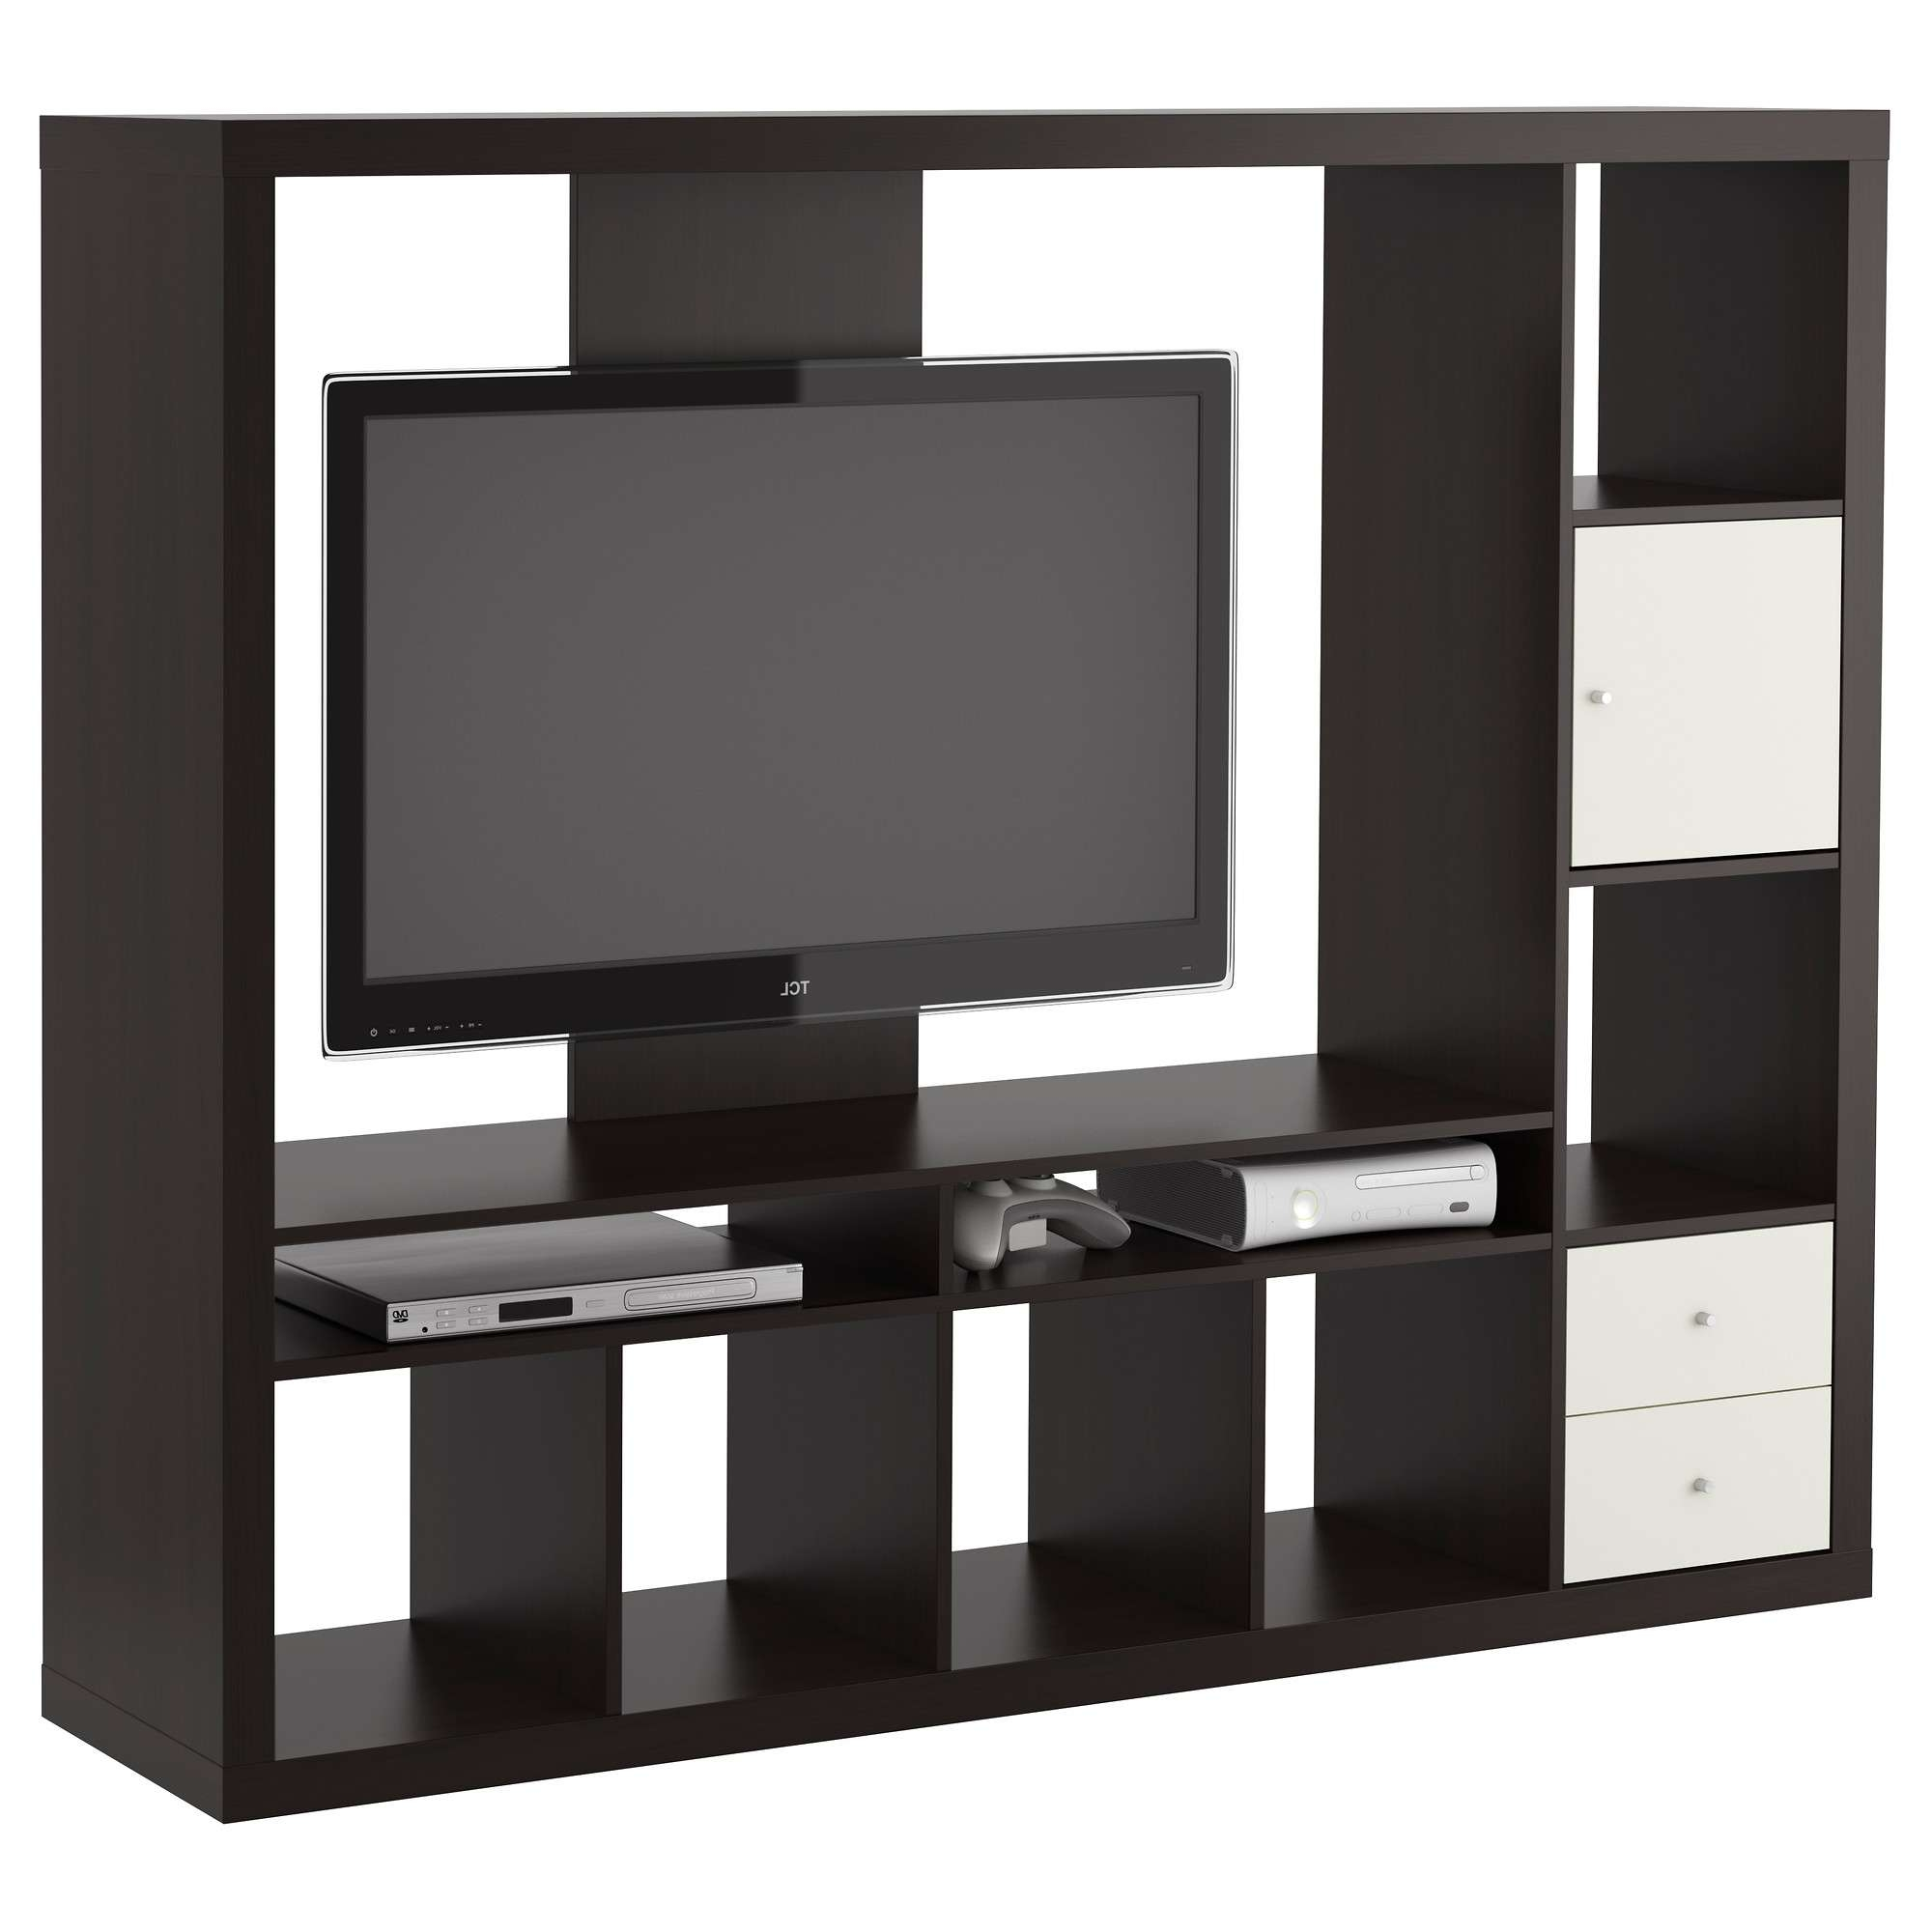 Square Black Shelving Units With White Wooden Drawers And With Regard To Square Tv Stands (View 12 of 15)